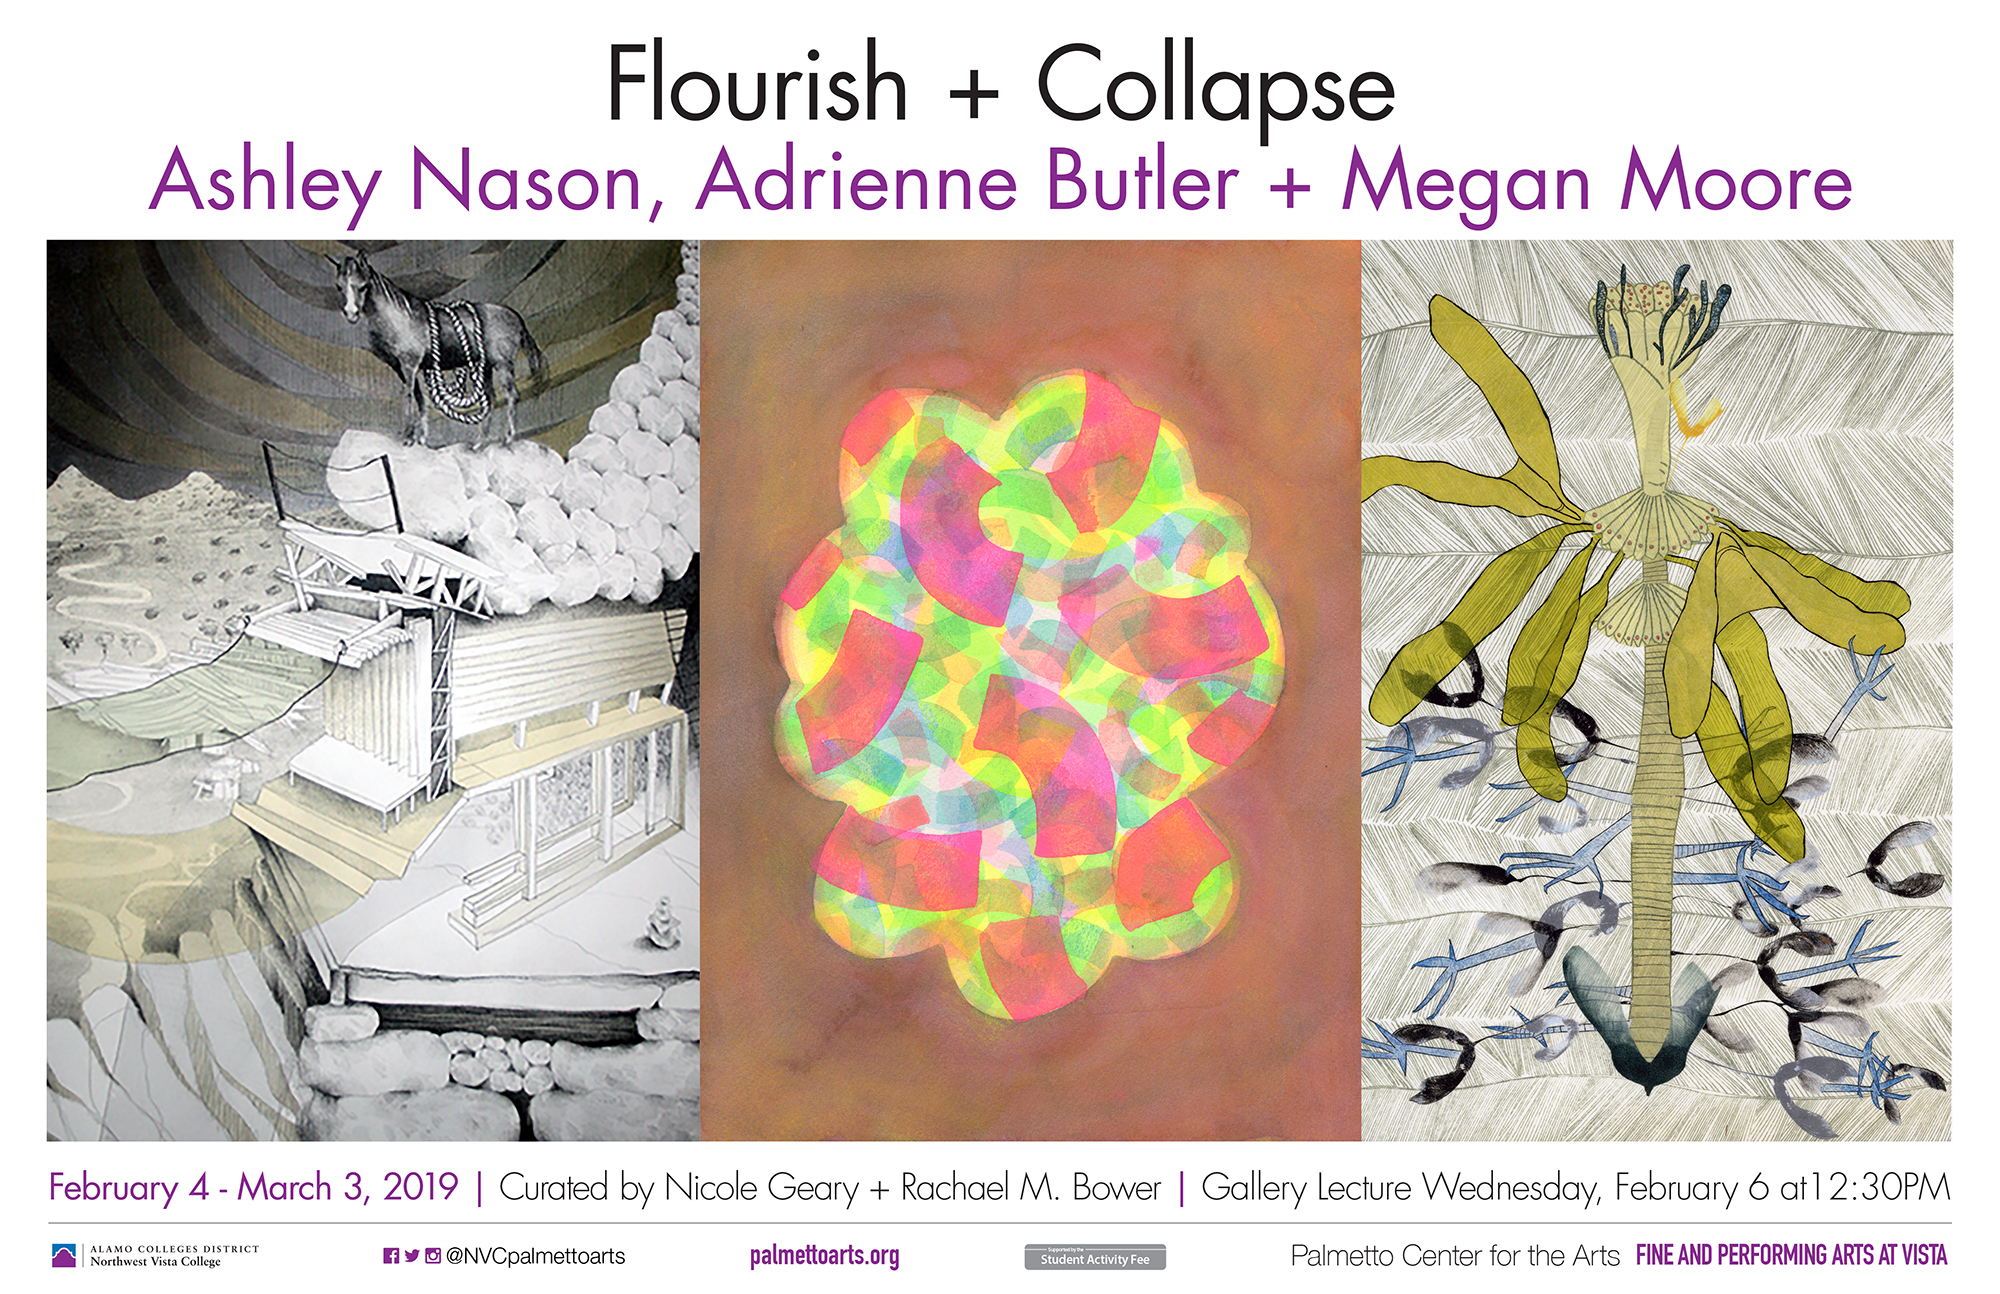 Flourish+Collapse art exhibit flyer